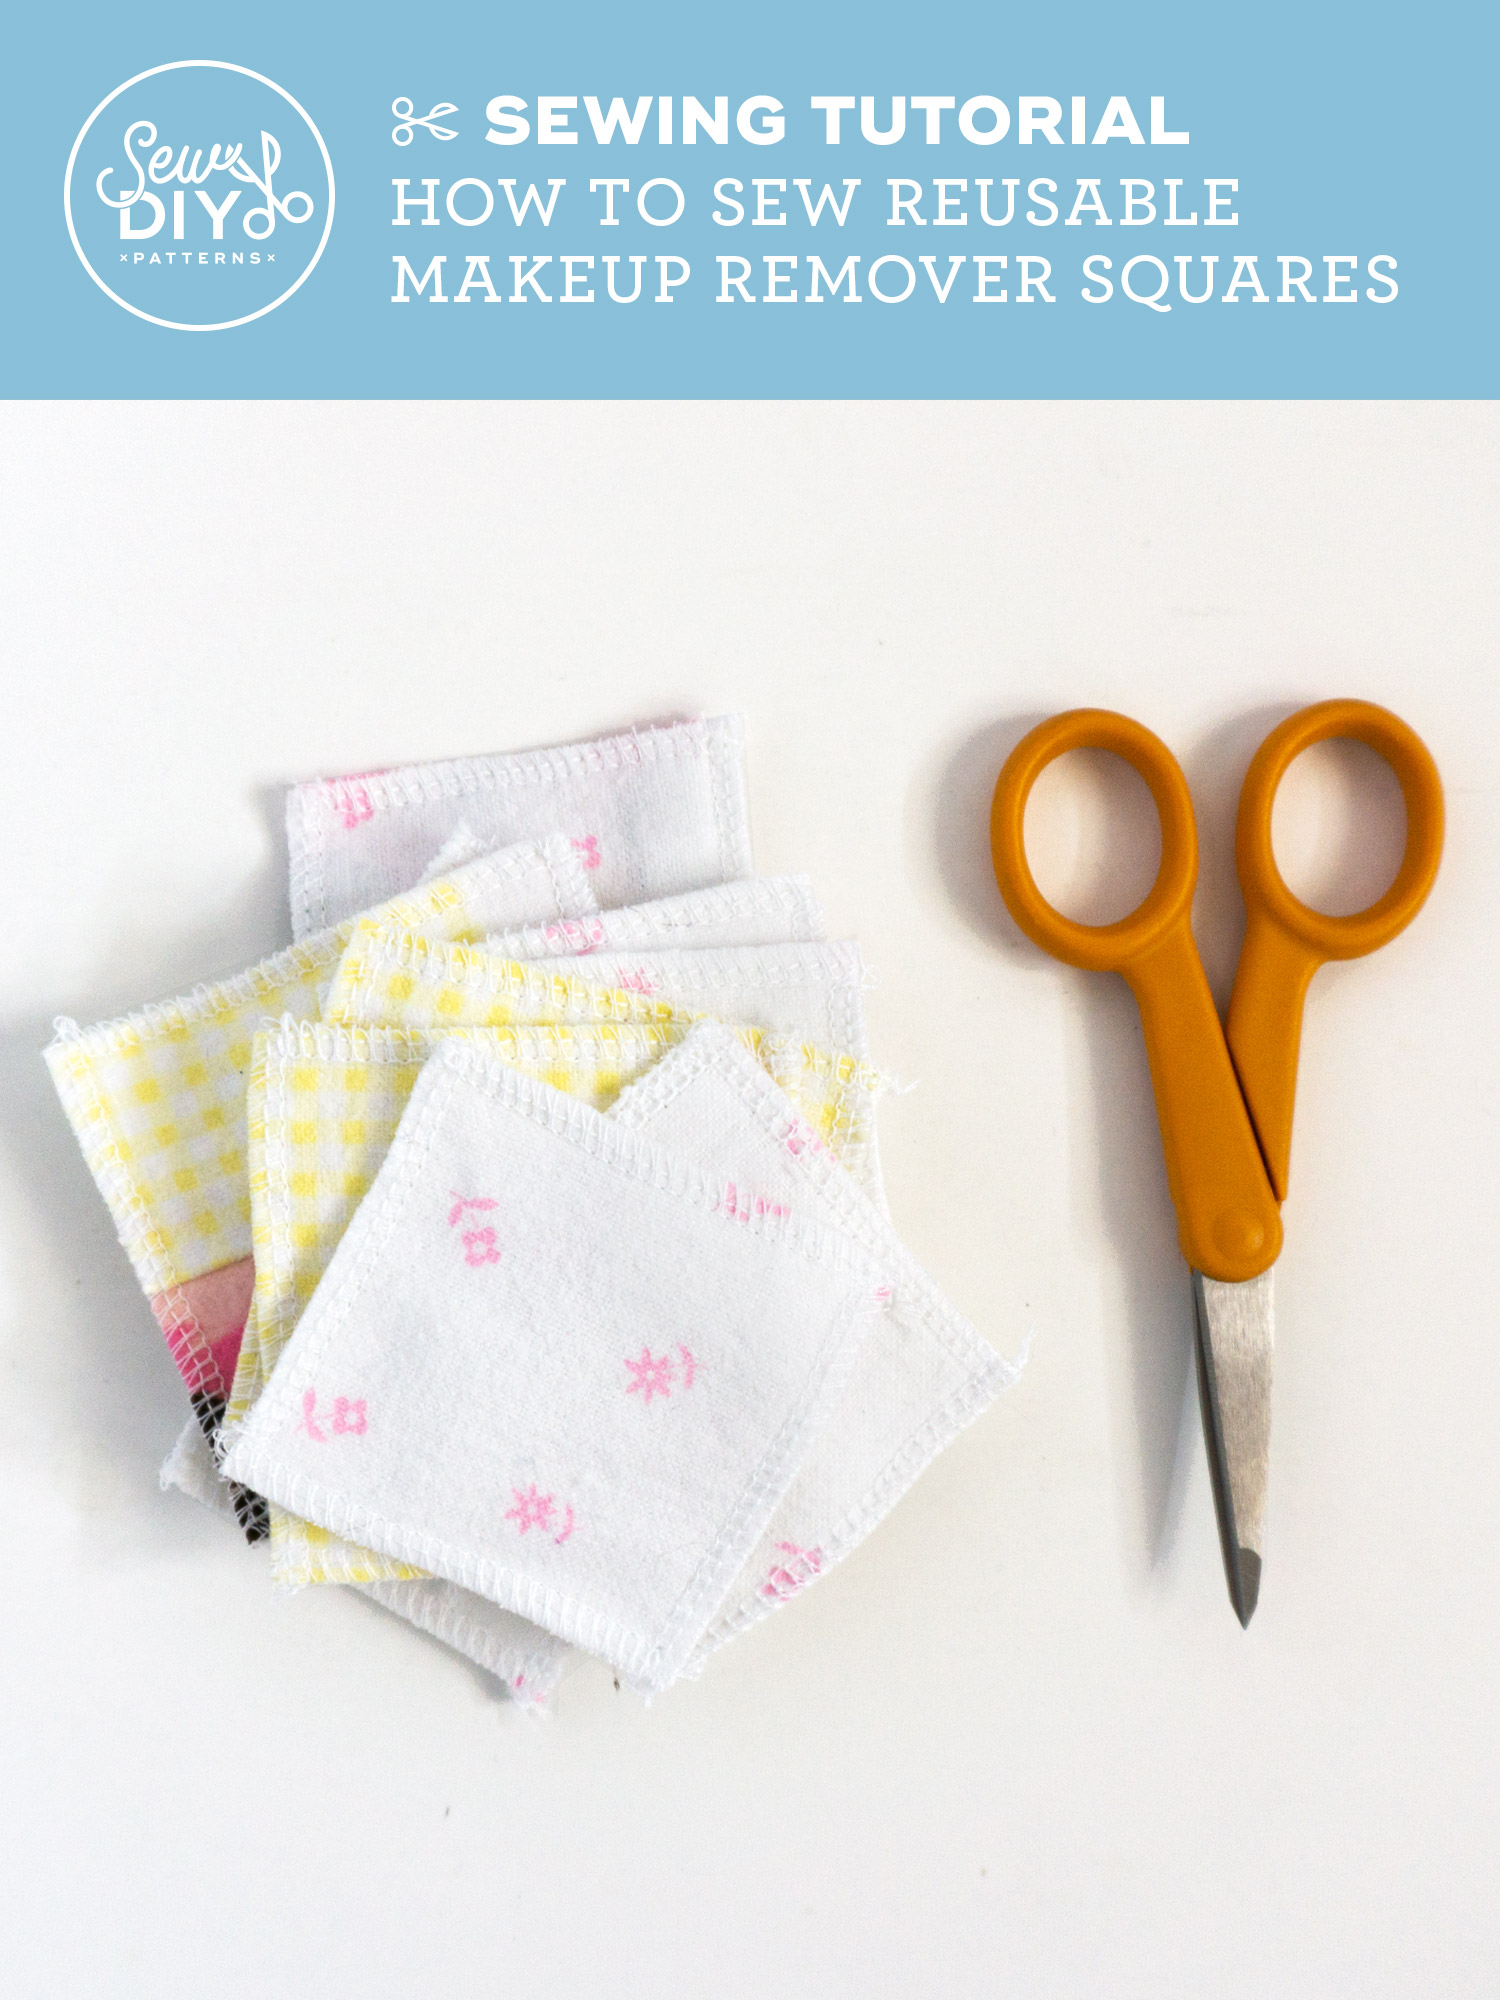 How to Sew Reusable Makeup Remover Squares